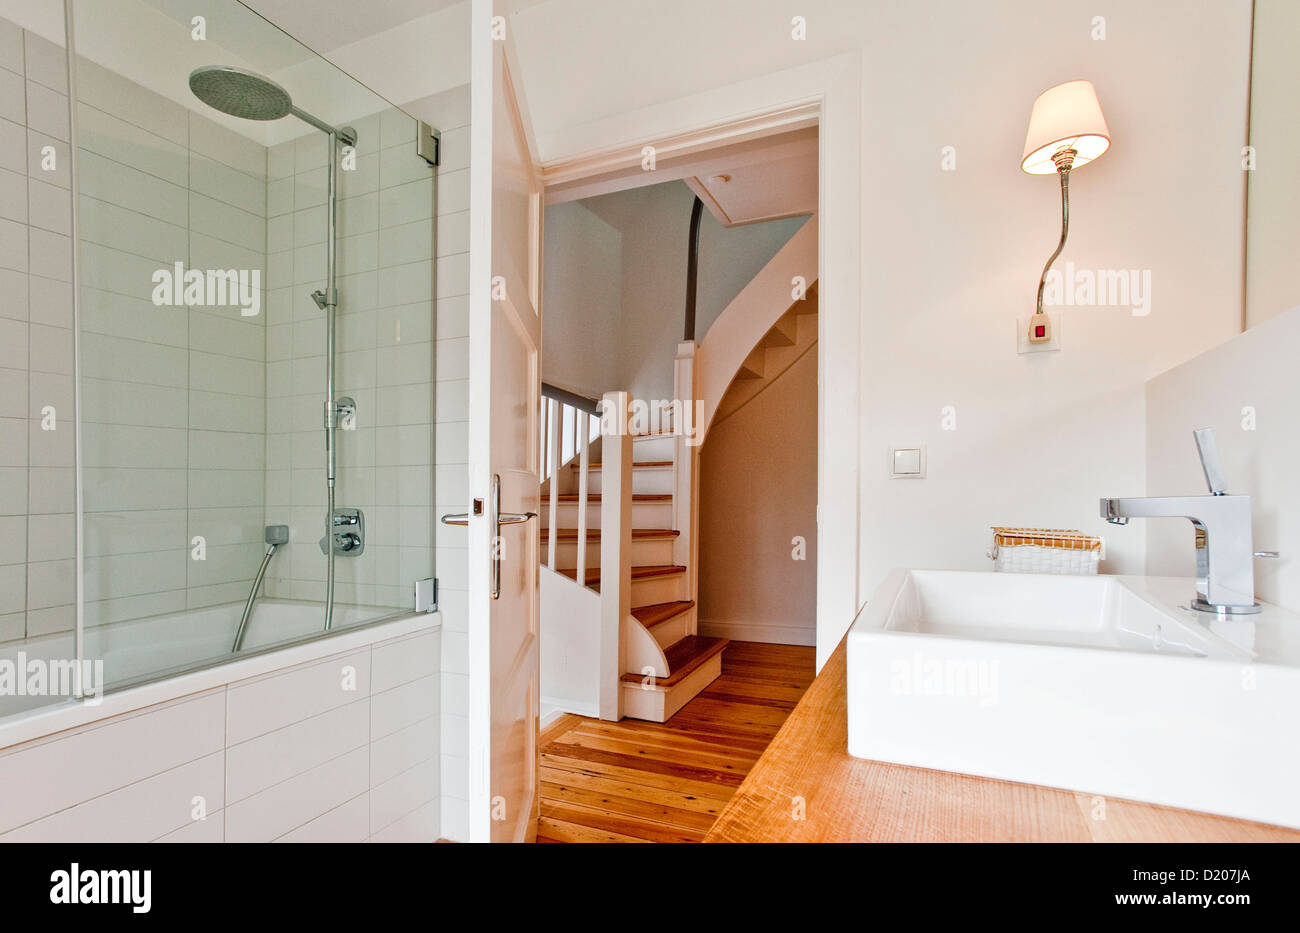 Bathroom furnished in country style, Hamburg, Germany - Stock Image